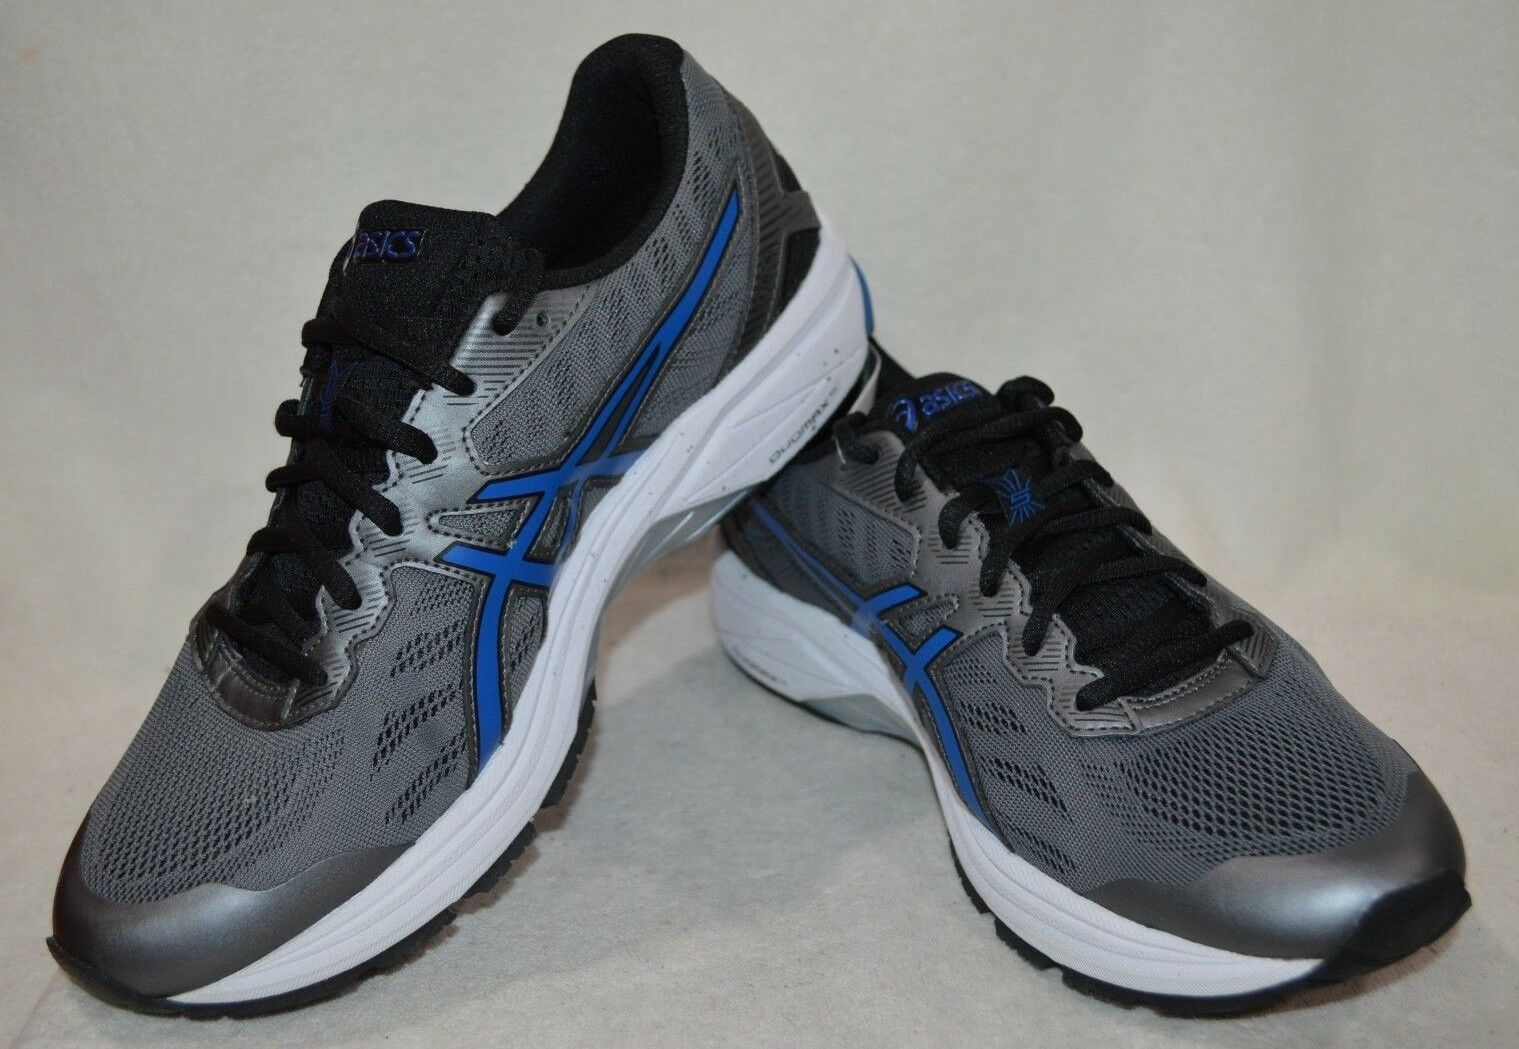 ASICS GT-1000 5 Carbon/Imperial/Black Men's Running Shoes Size T6A3N - Size Shoes 9/13 NWB 842c5f